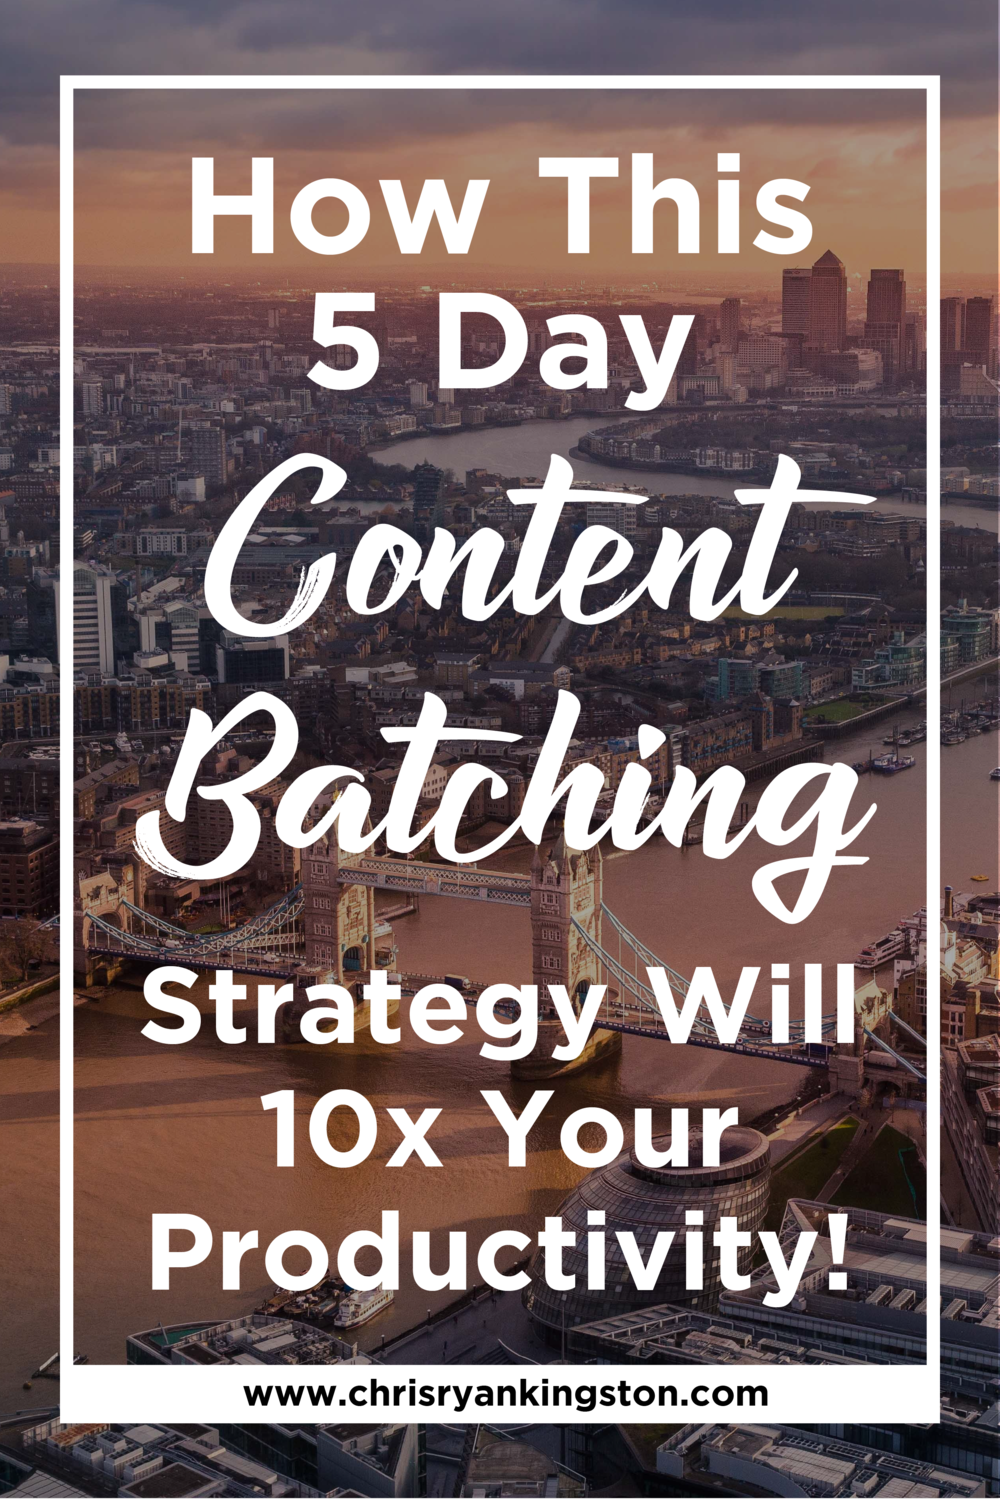 How This 5 Day Content Batching Challenge Will 10x Your Content Creation Productivity! | chrisryankingston.com